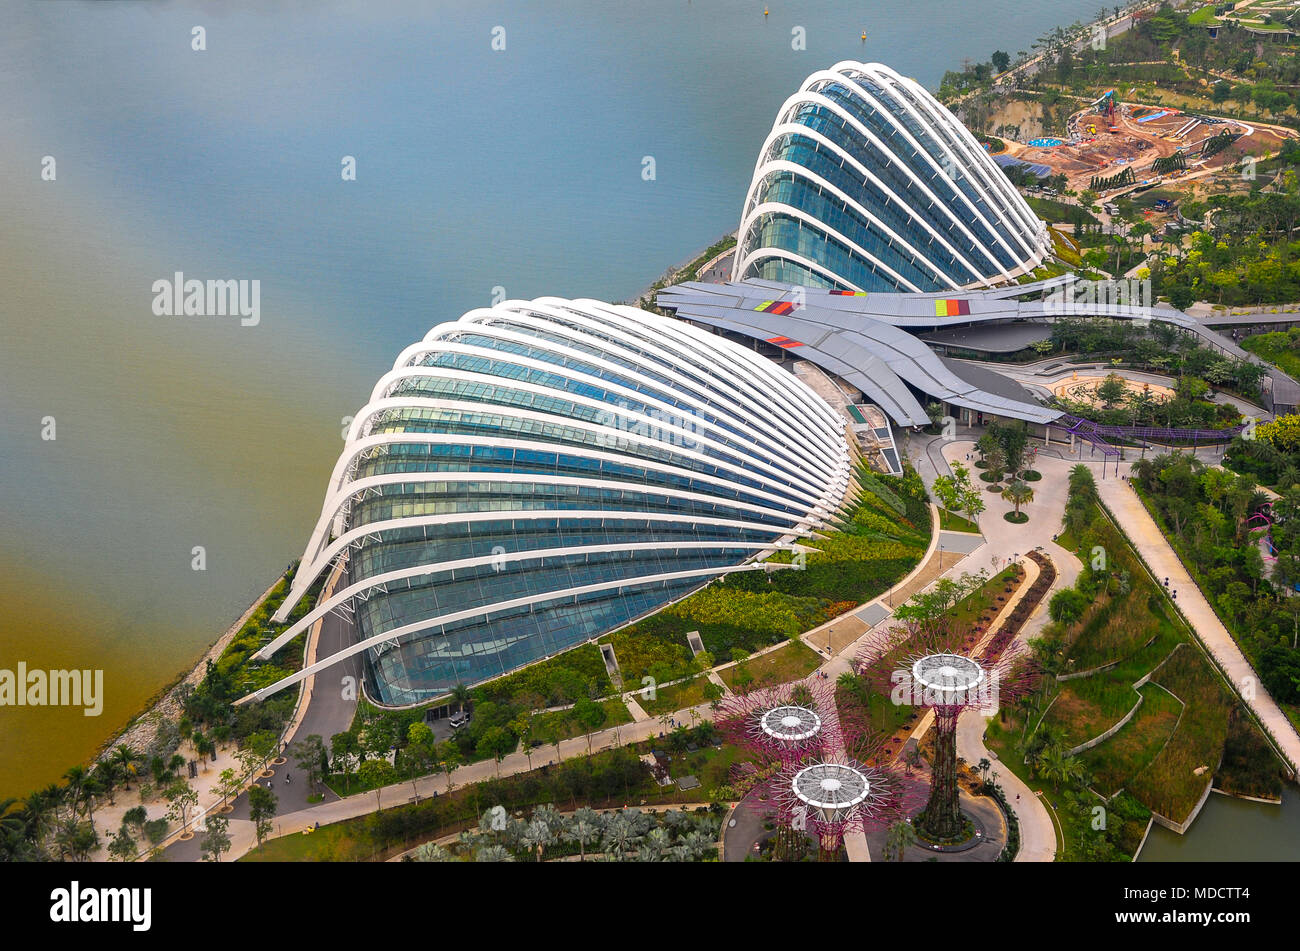 Aerial view at sunset to the Flower Dome and Cloud Forest, Gardens by the Bay, Singapore - Stock Image